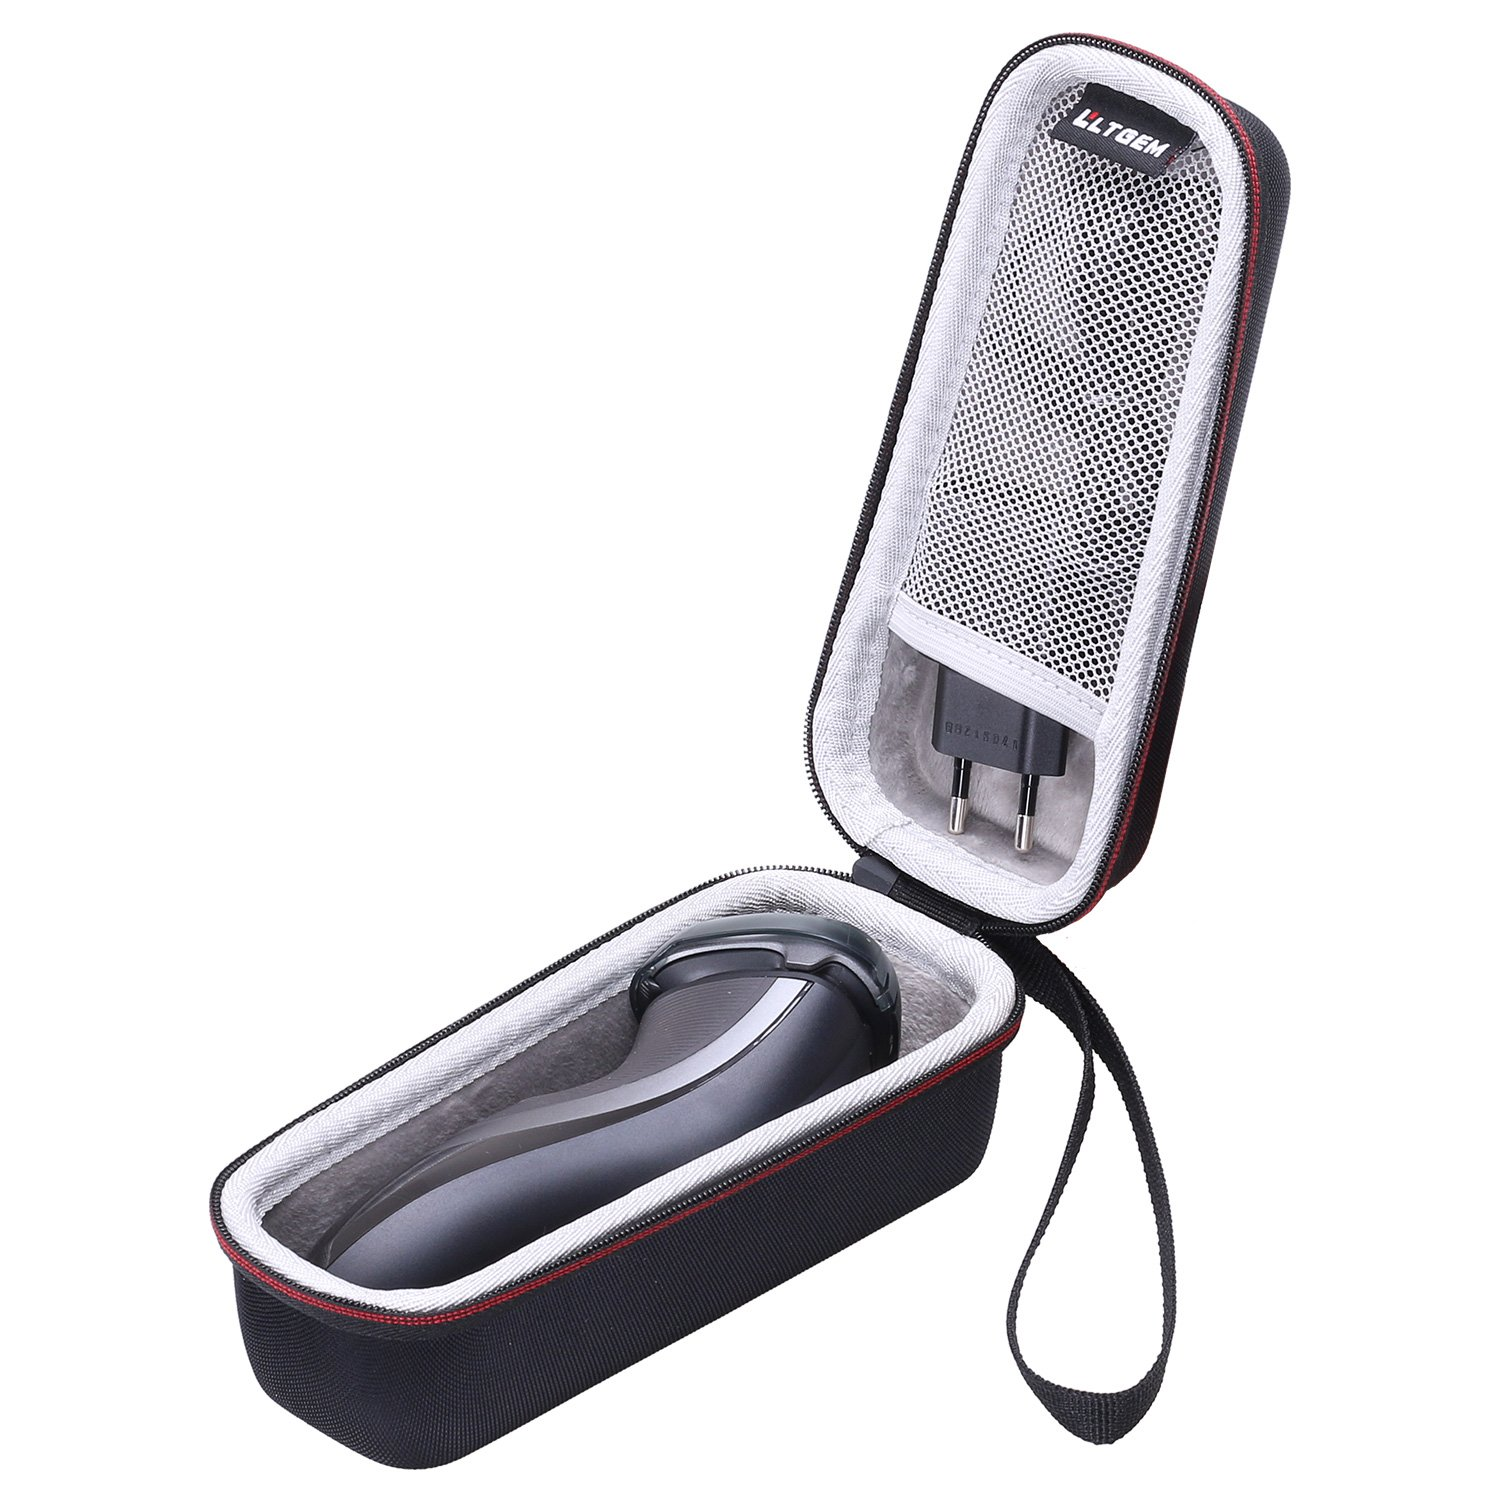 LTGEM Carrying Case for Philips Norelco Electric Series 3000 9000 Shaver. Fits 3100 3500 9700 9300, S3310/81 S3560/81 S9311/87 CS209